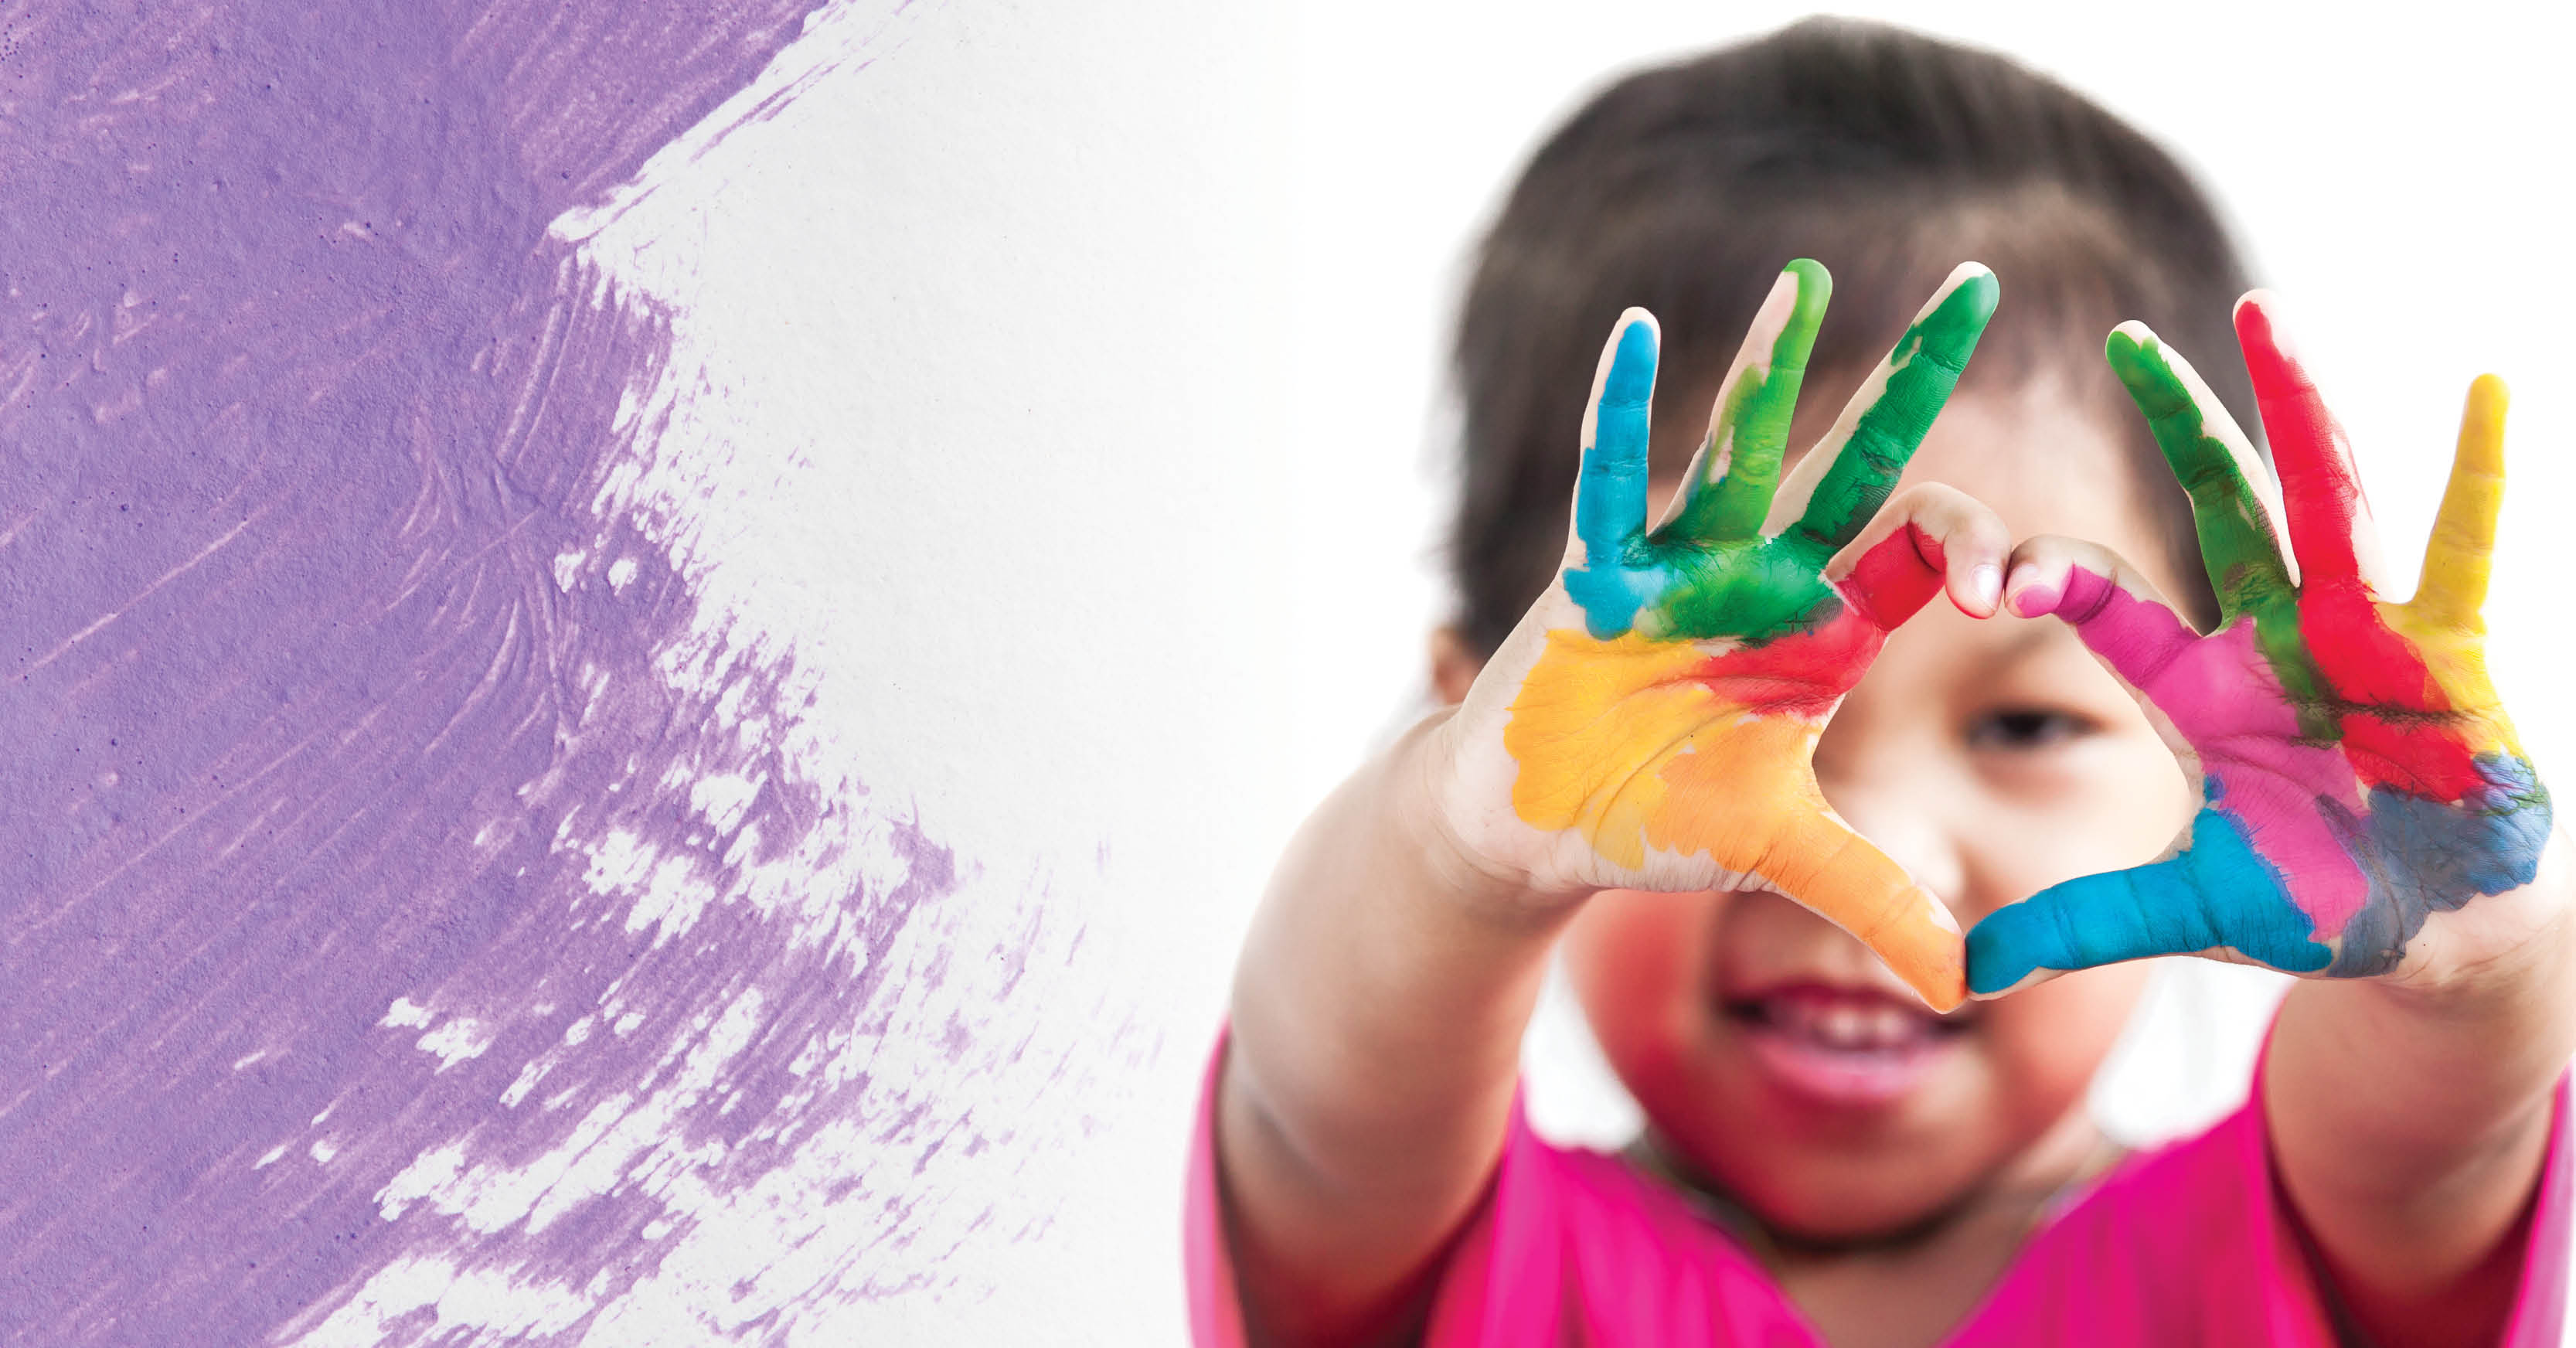 A child makes a heart with their painted hands